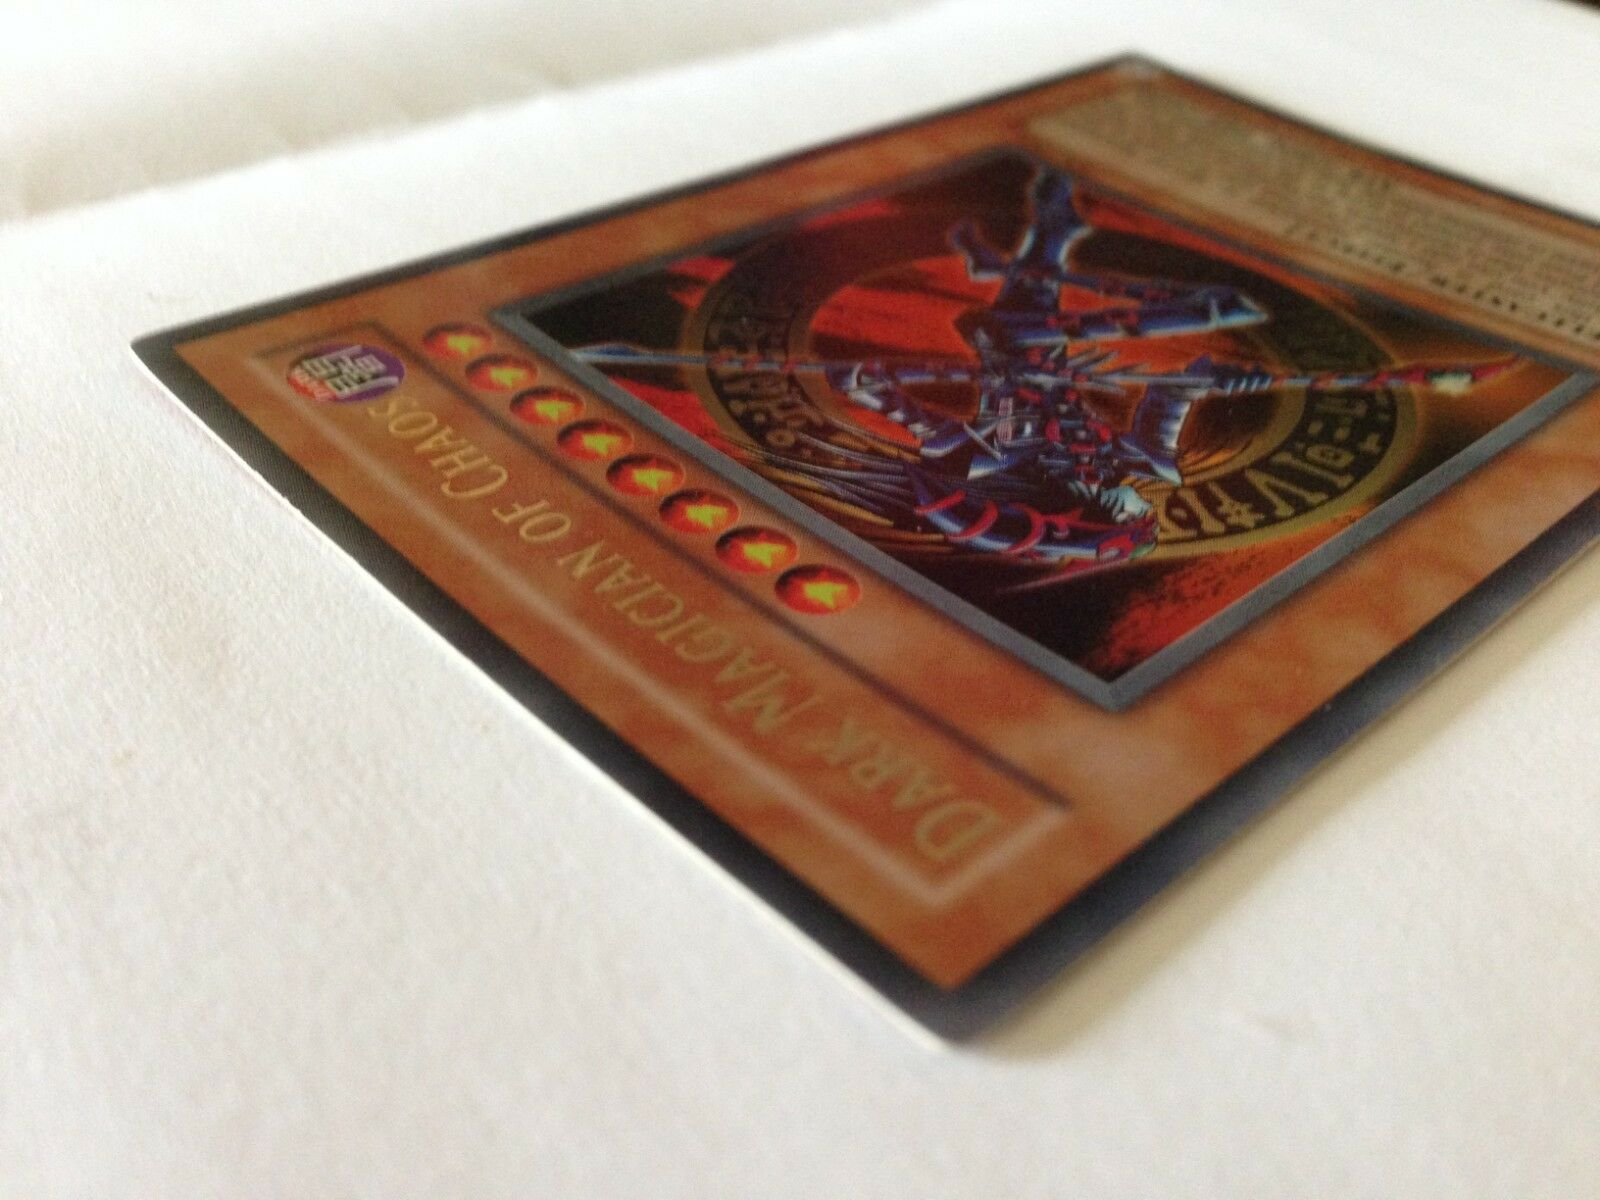 YuGiOh Dark Magician of Chaos IOC-065 Unlimited Ultra Ultra Ultra Rare Mint Condition 099723